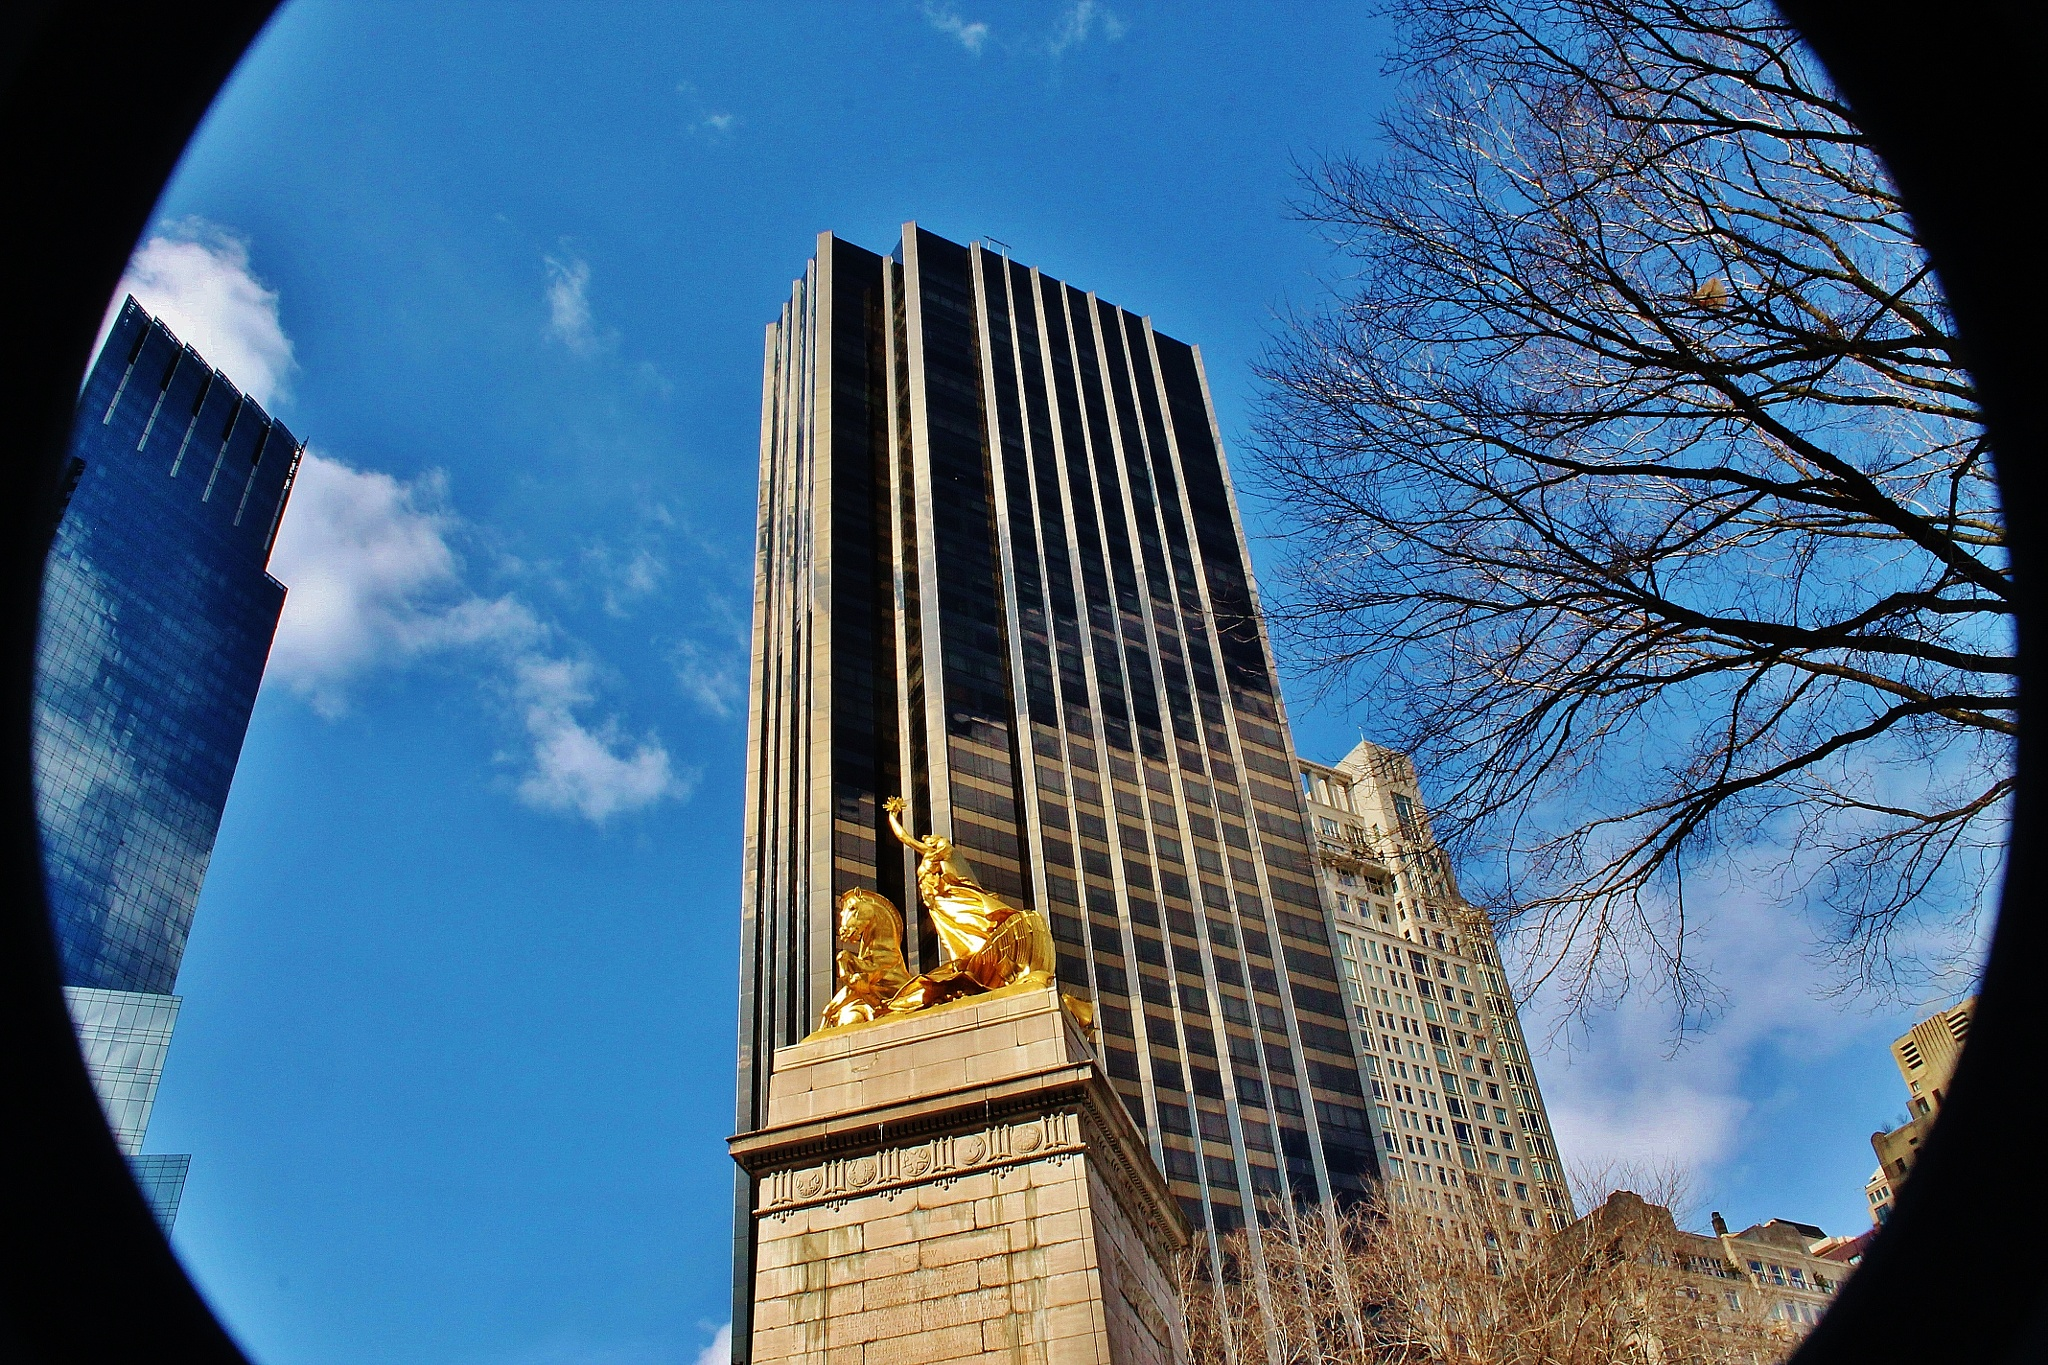 Columbus Circle statue, by Liborio Drogo